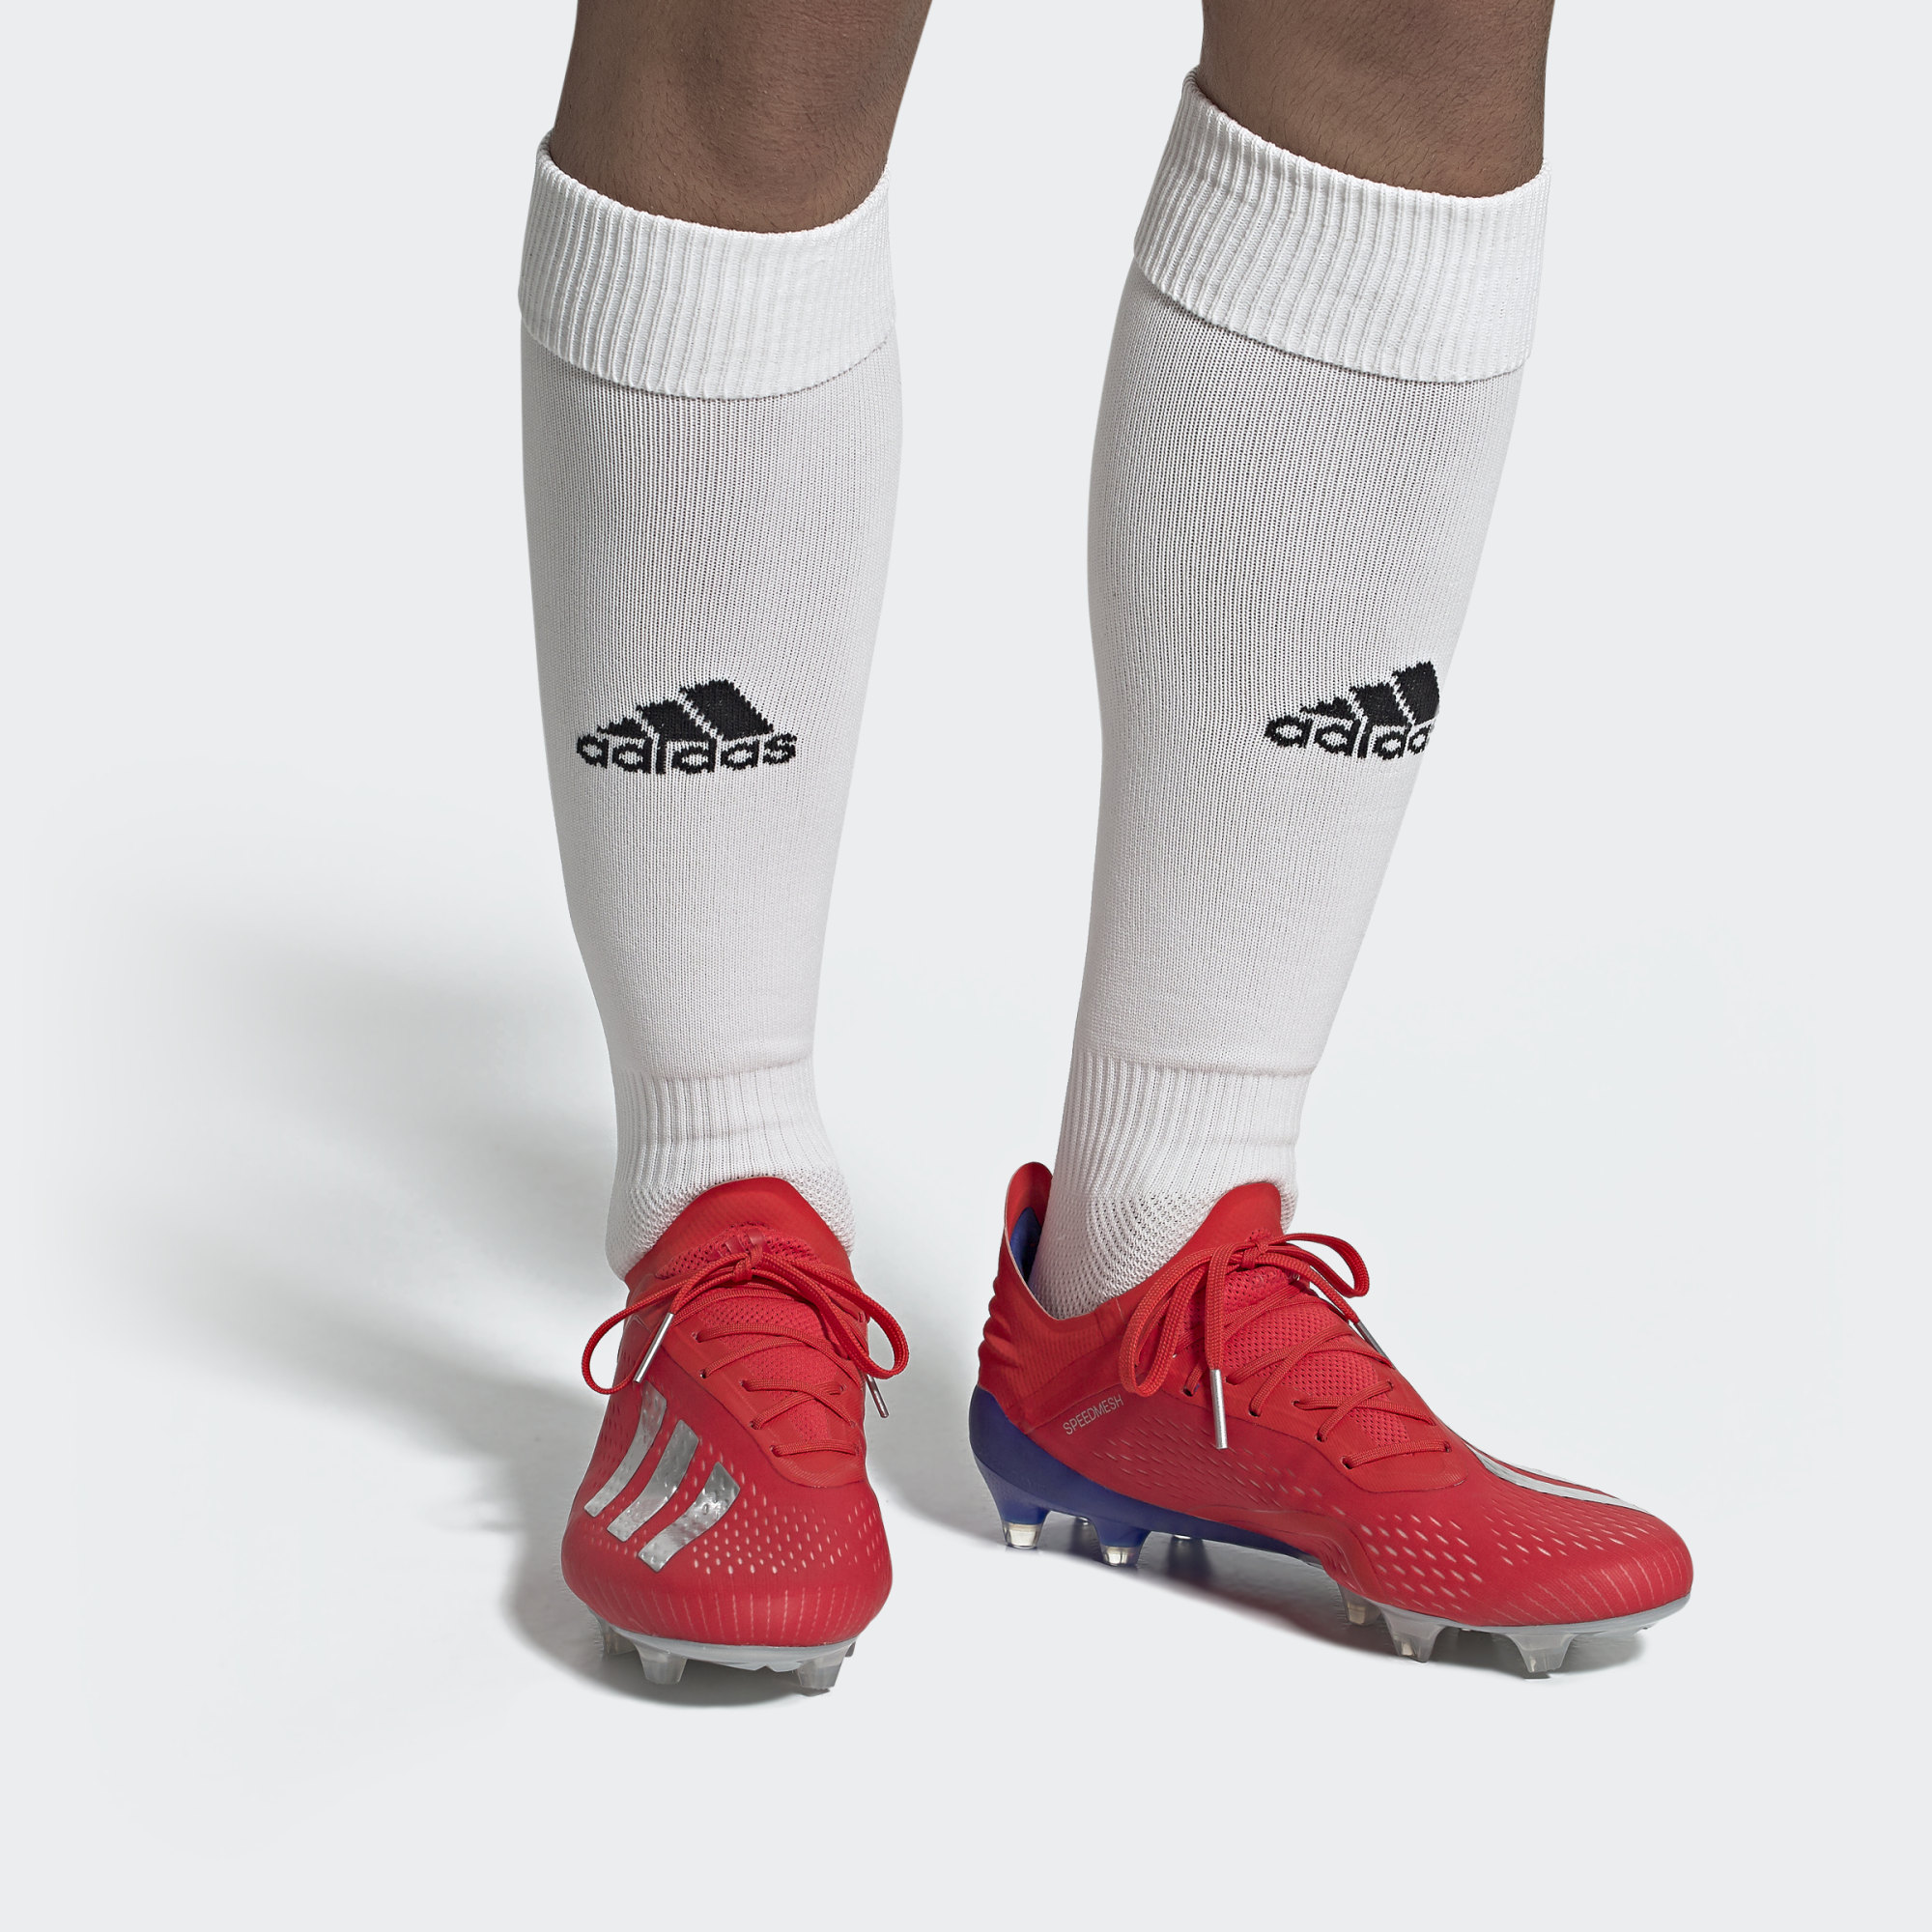 390d9fb9408 Adidas X 18.1 FG Exhibit - Active Red   Silver Met   Bold Blue ...